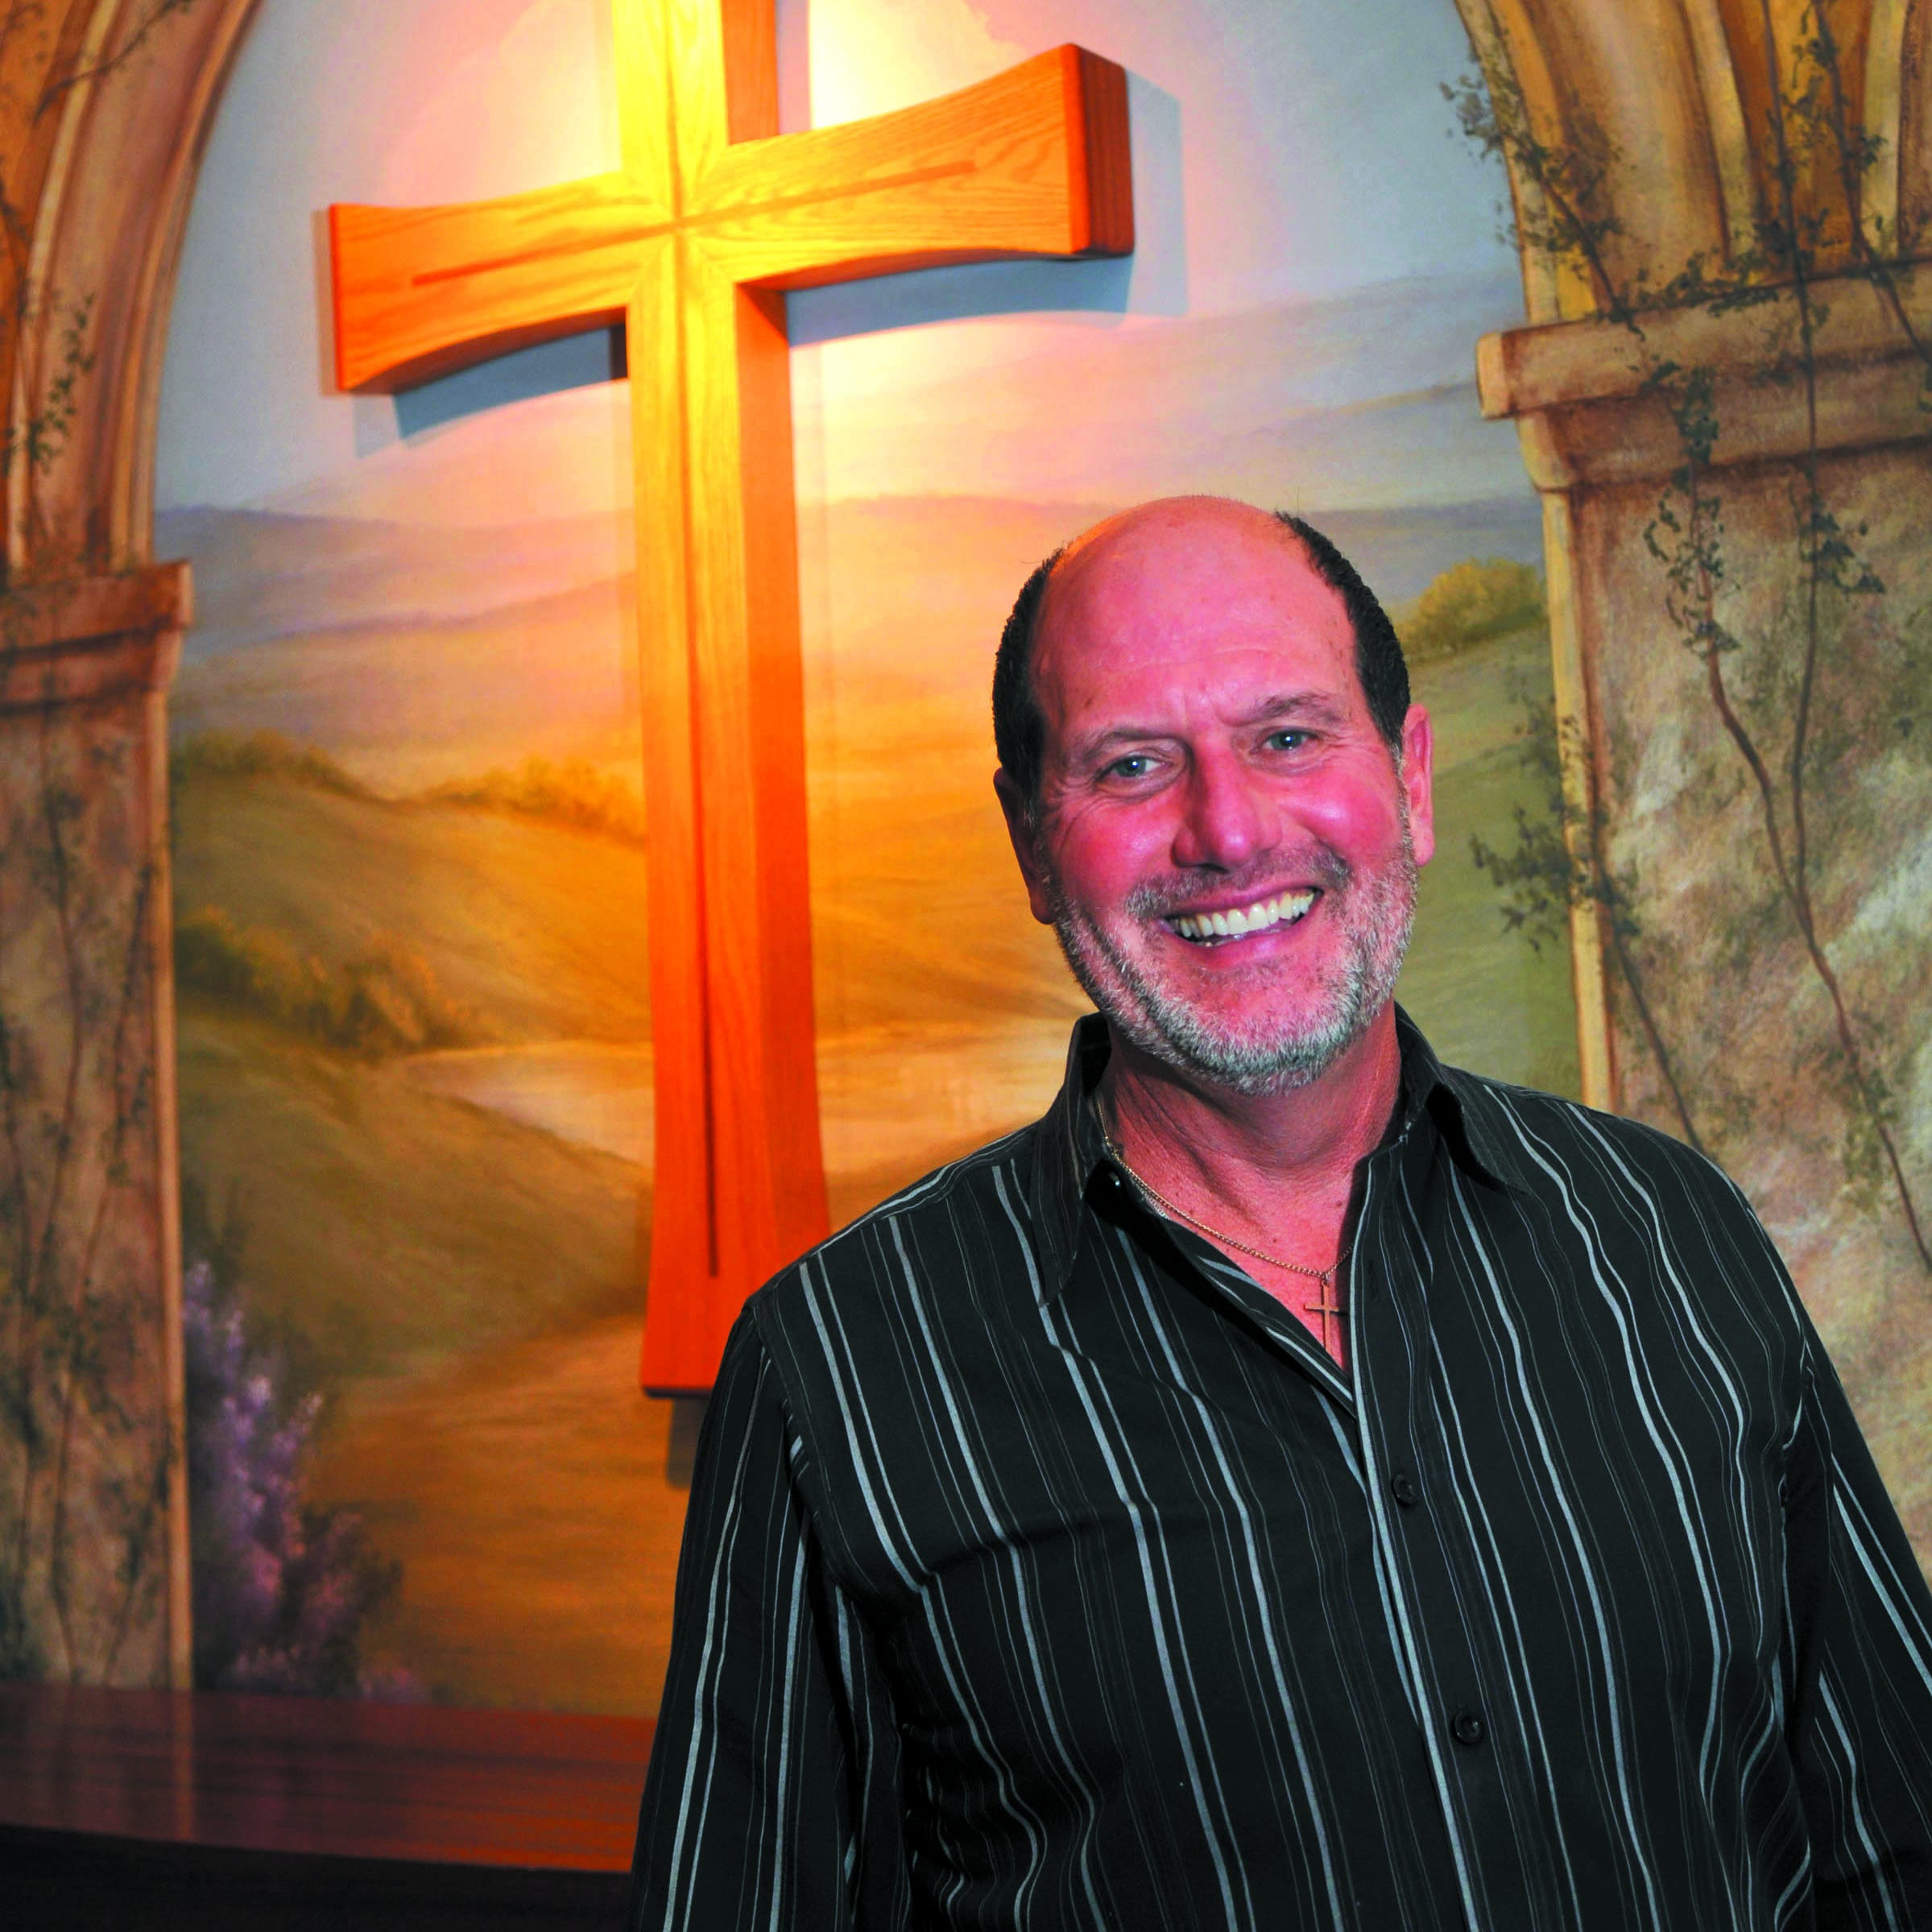 Days after resigning, longtime Oconomowoc pastor announces he's starting a new church